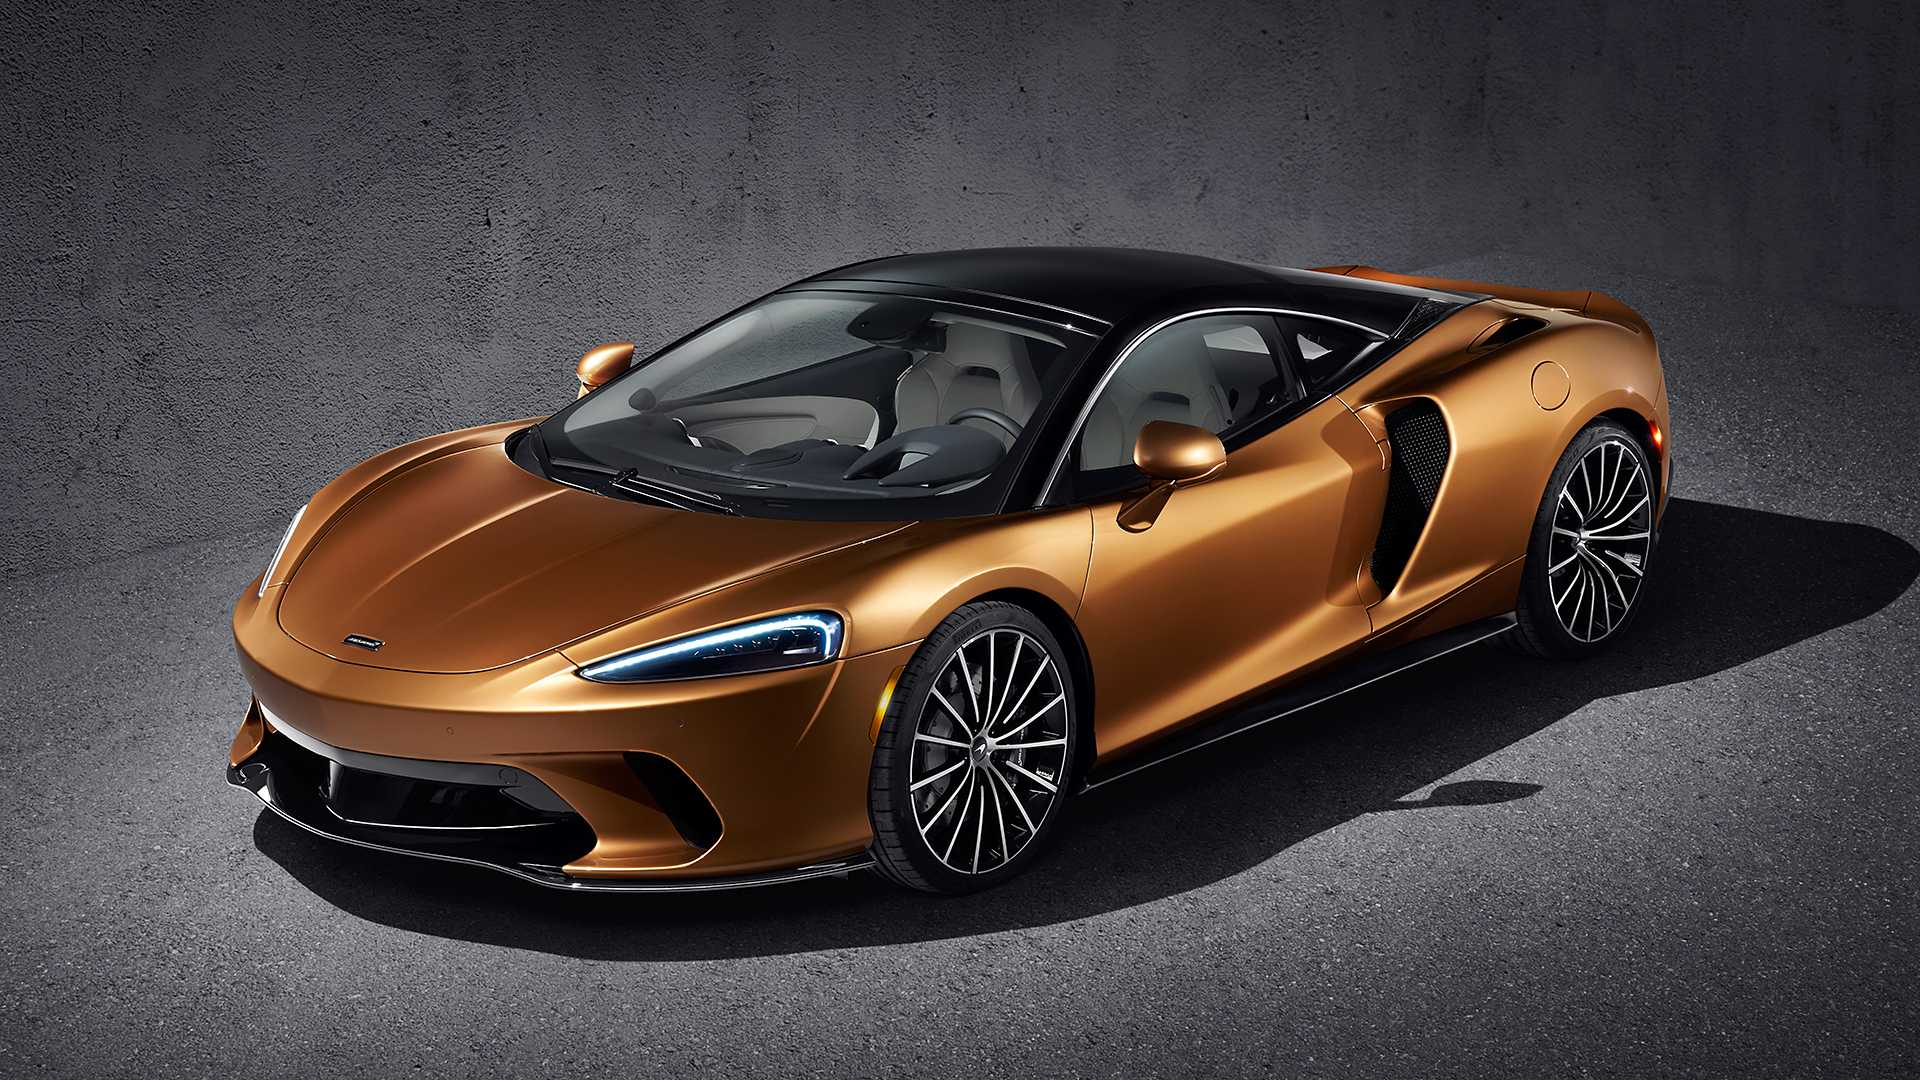 British luxury carmaker McLaren has finally revealed everything there is to know about its upcoming Grand Tourer supercar ideally suited for long journeys